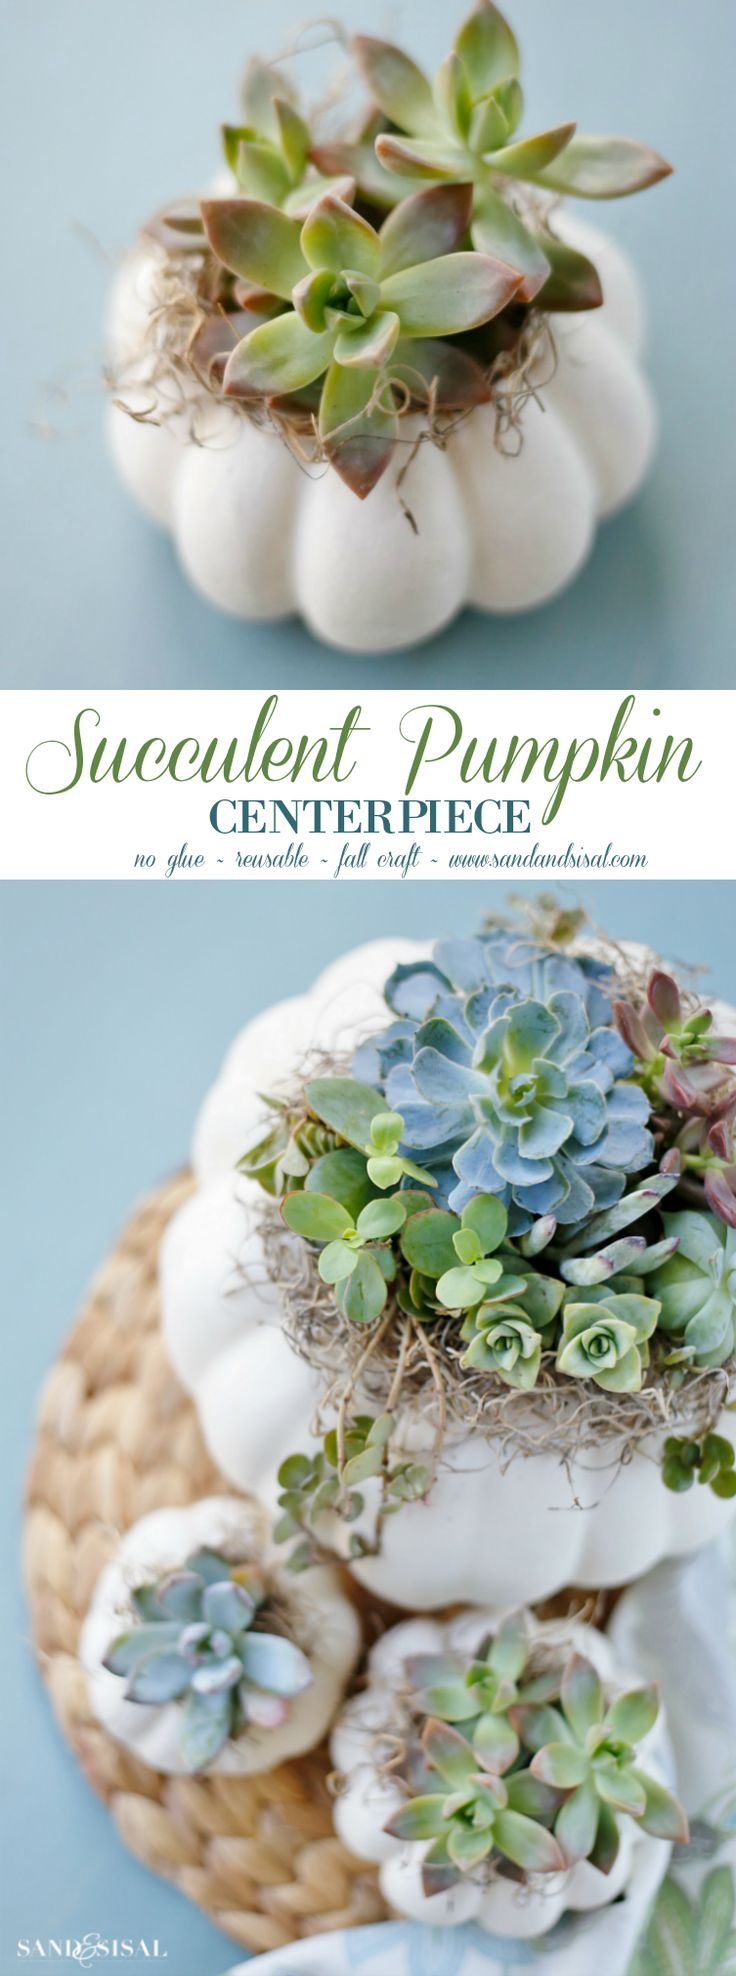 Succulent Pumpkin Centerpiece DIY